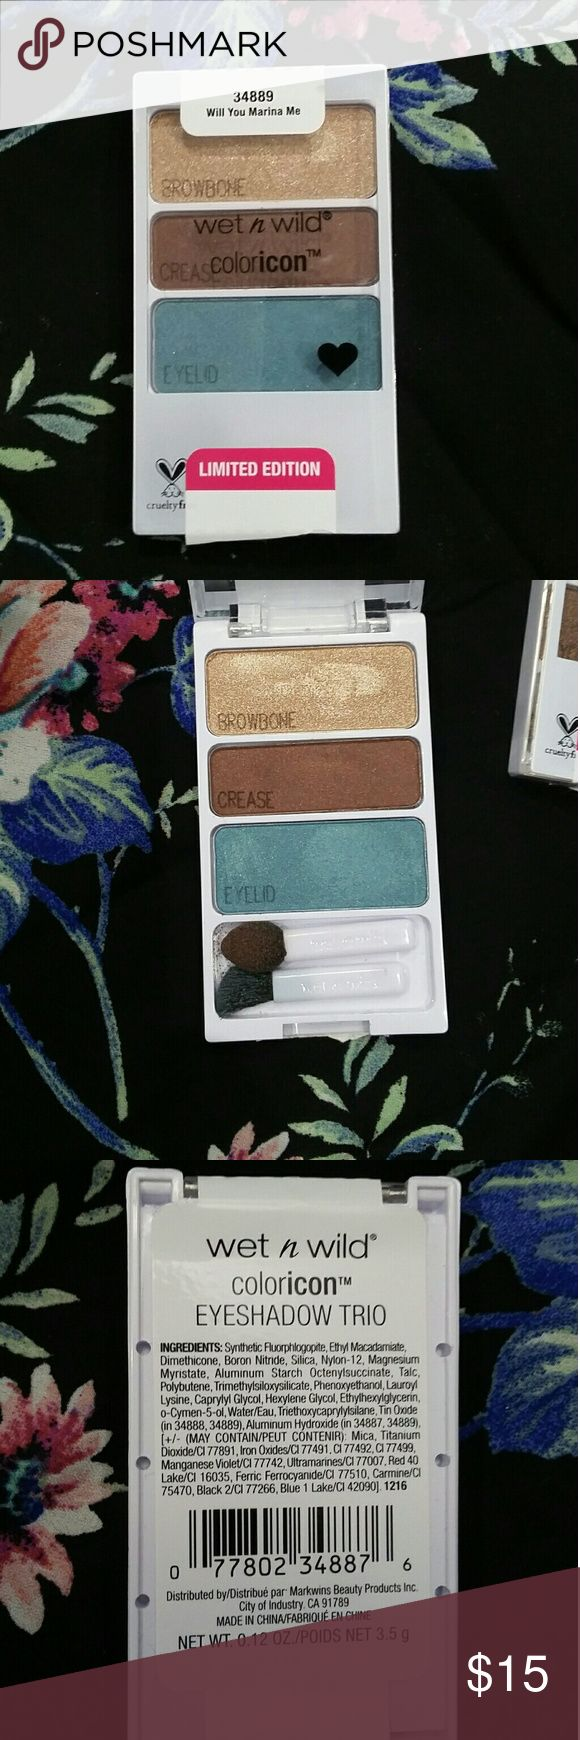 Coloricon Will You Marina Me Limited Edition Coloricon eyeshadow pots include: Gold for browbone, toasted brown for crease, and ocean teal green for eyelid. Cruelty free. Priced to sell, no offers, please! Barely used. Applicators included. Will sanitize before shipping! wet n wild Makeup Eyeshadow